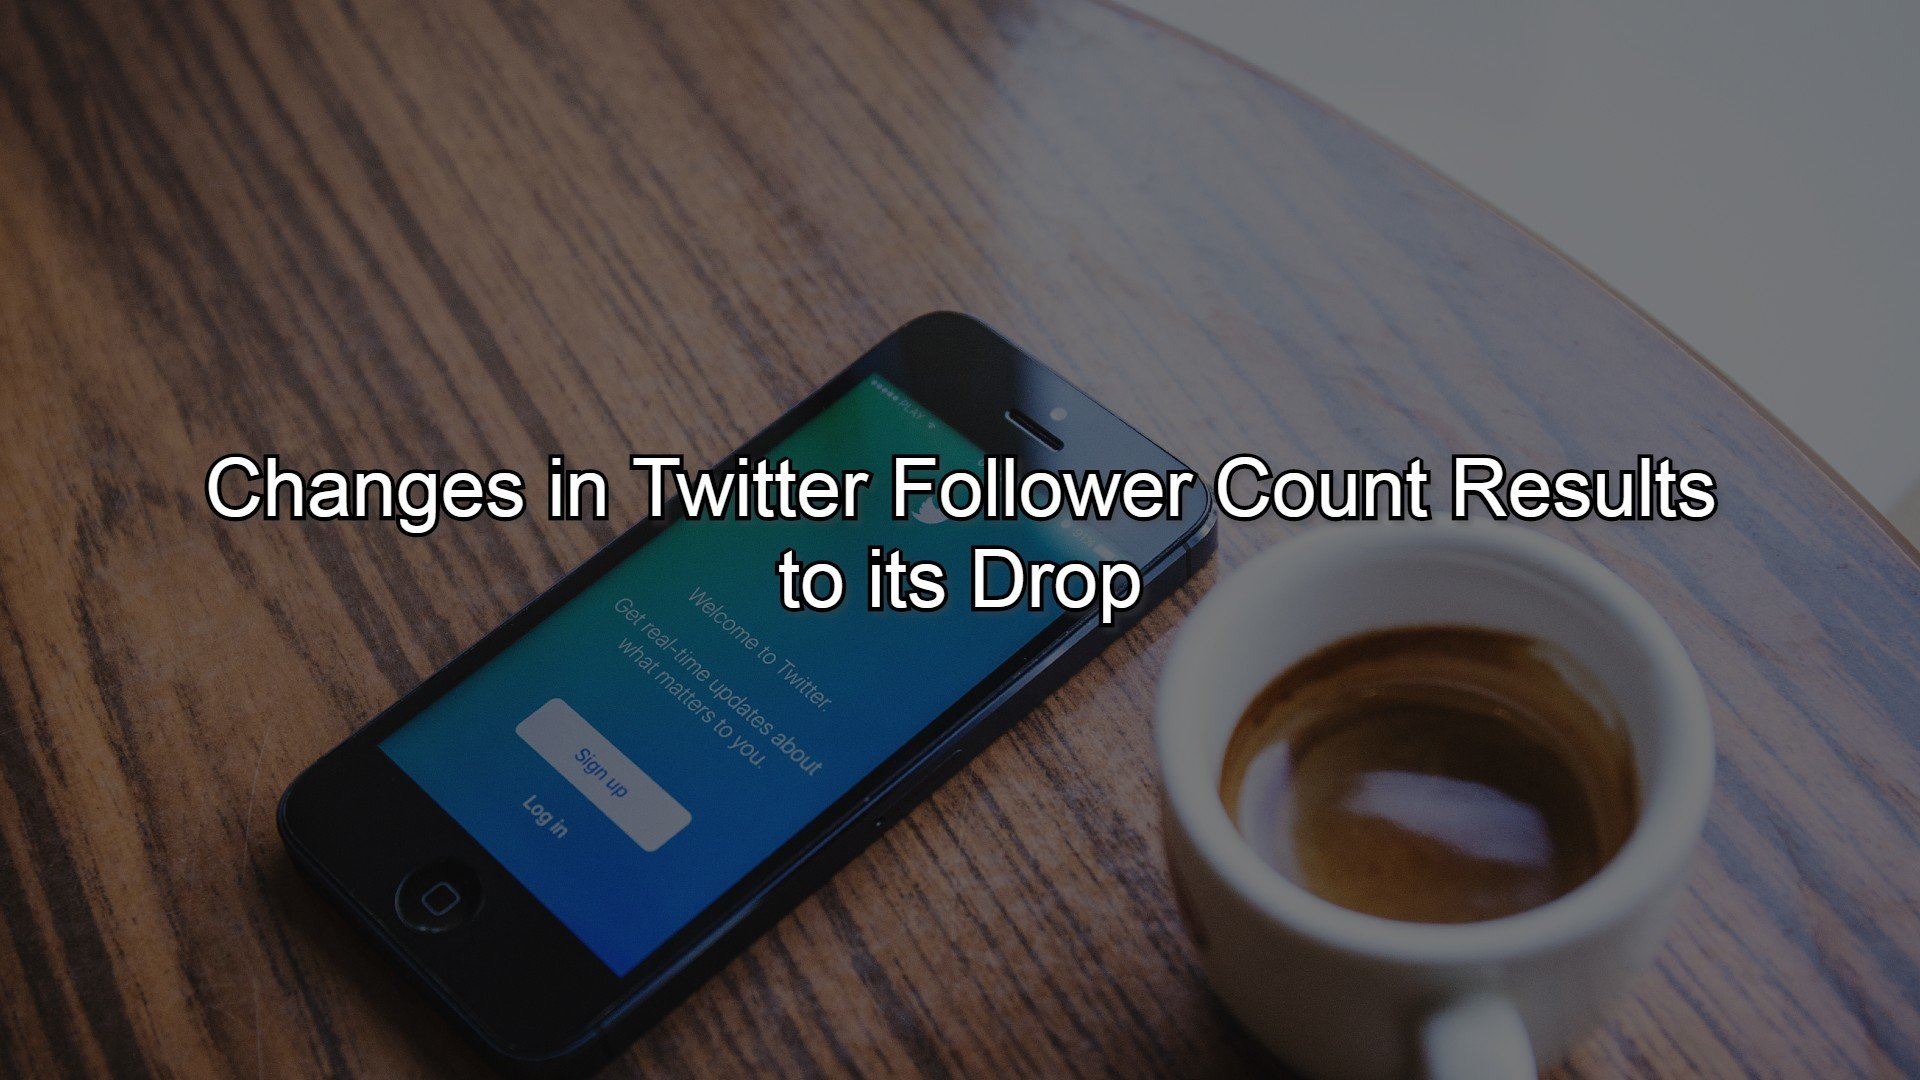 Changes in Twitter Follower Count Results to its Drop